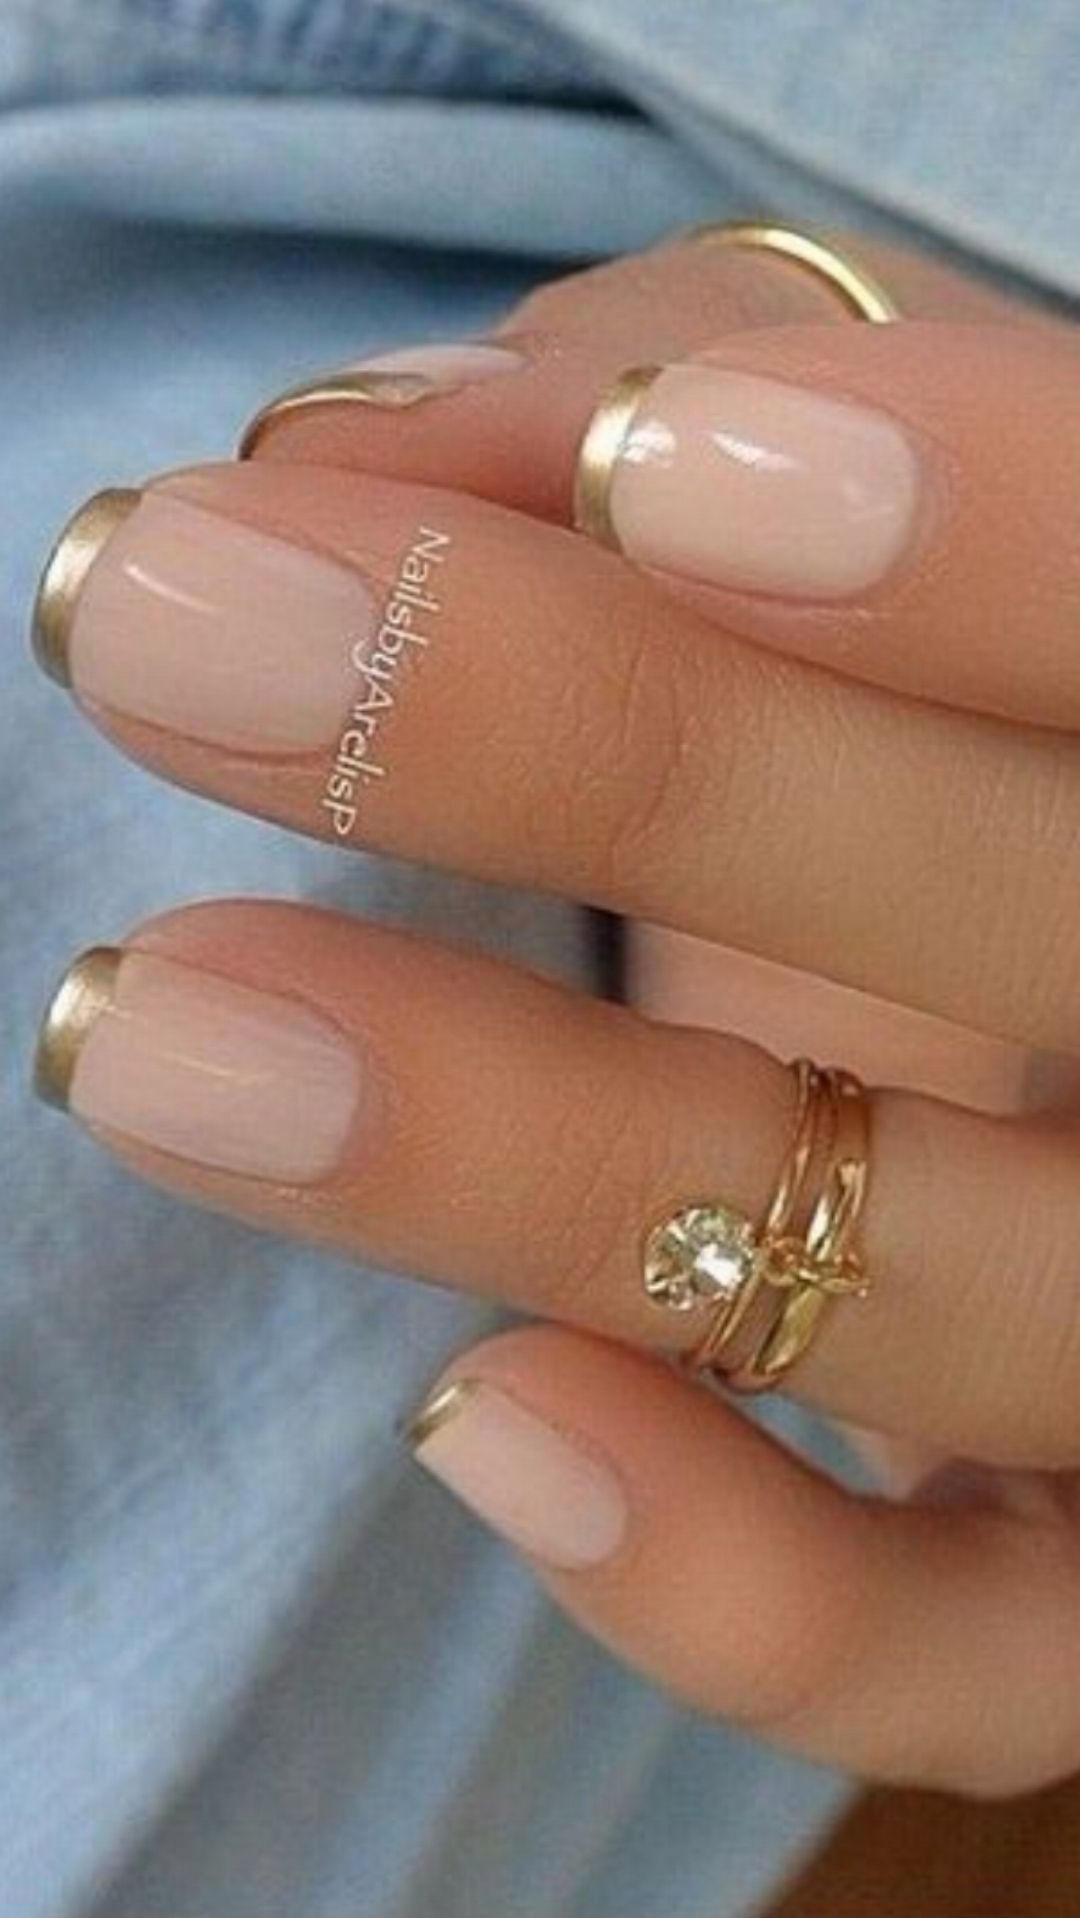 💅 101 Trending Nail Art Ideas   French manicure designs, Manicure ...